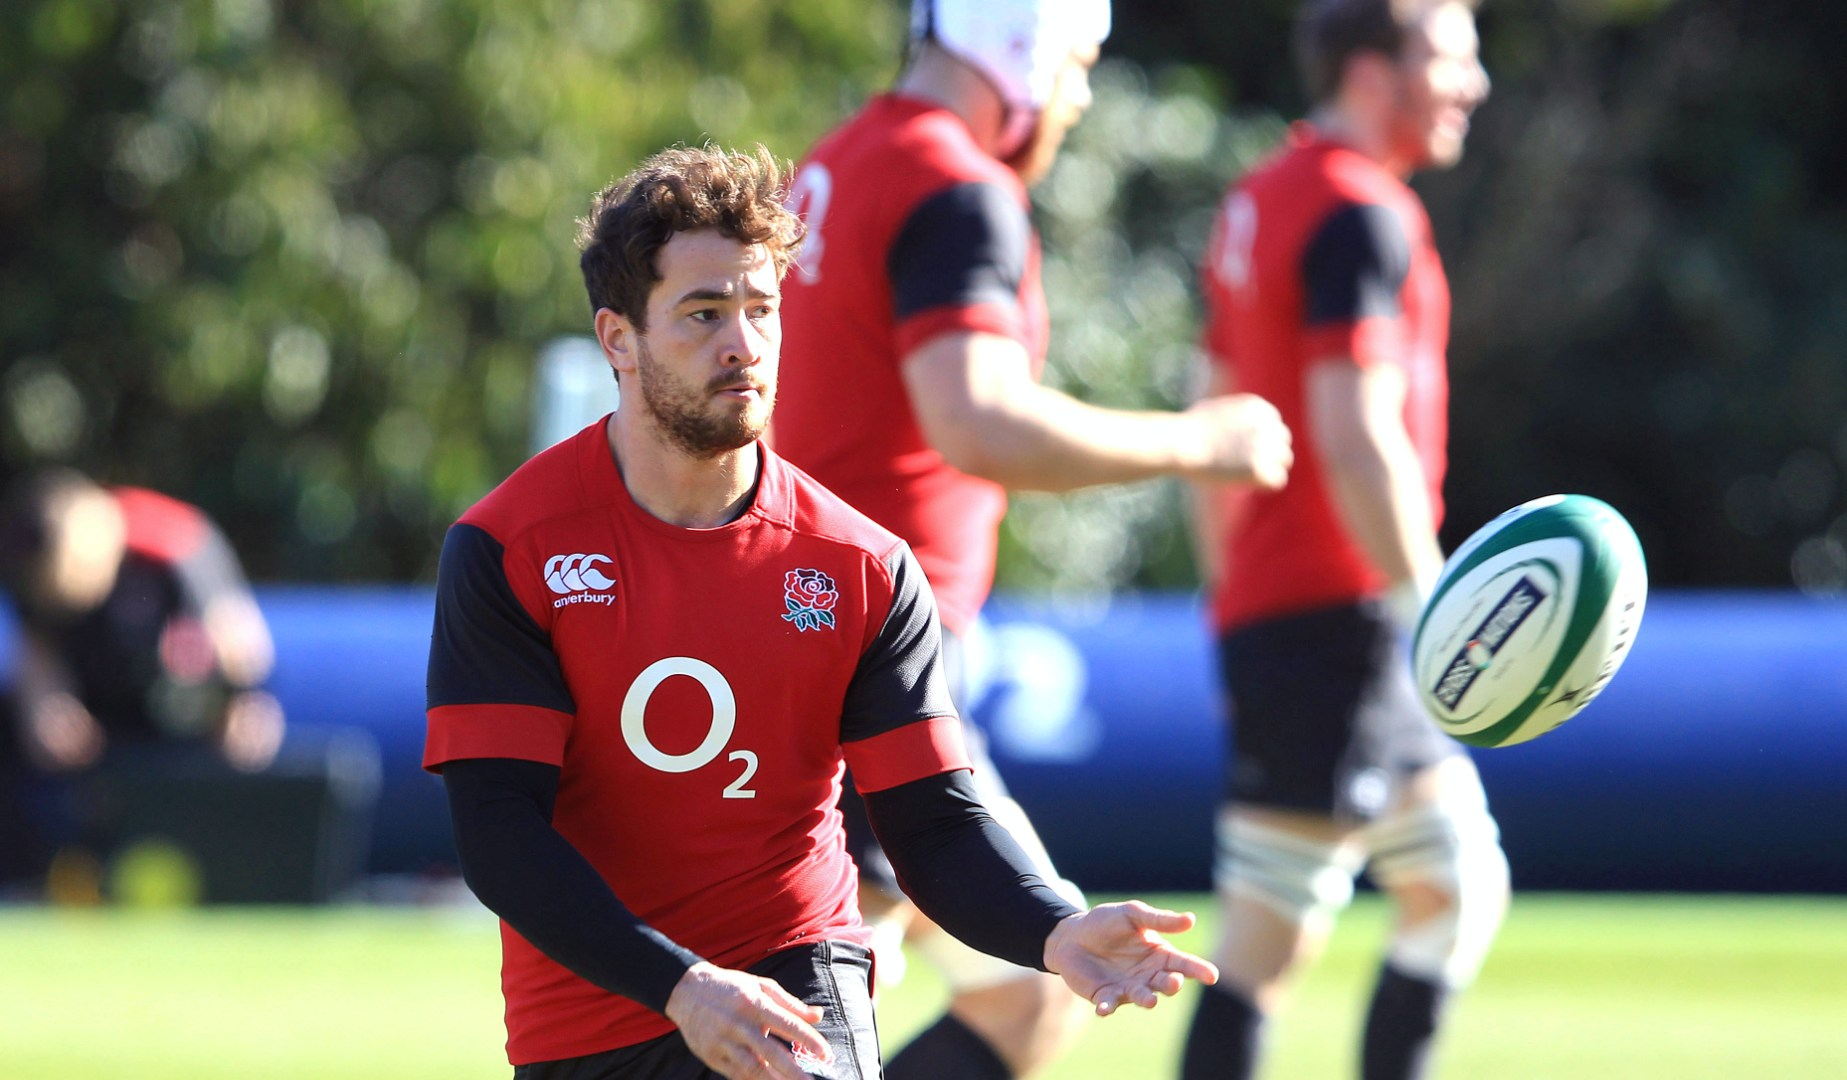 LionsWatch: Cipriani on fire for in-form Wasps